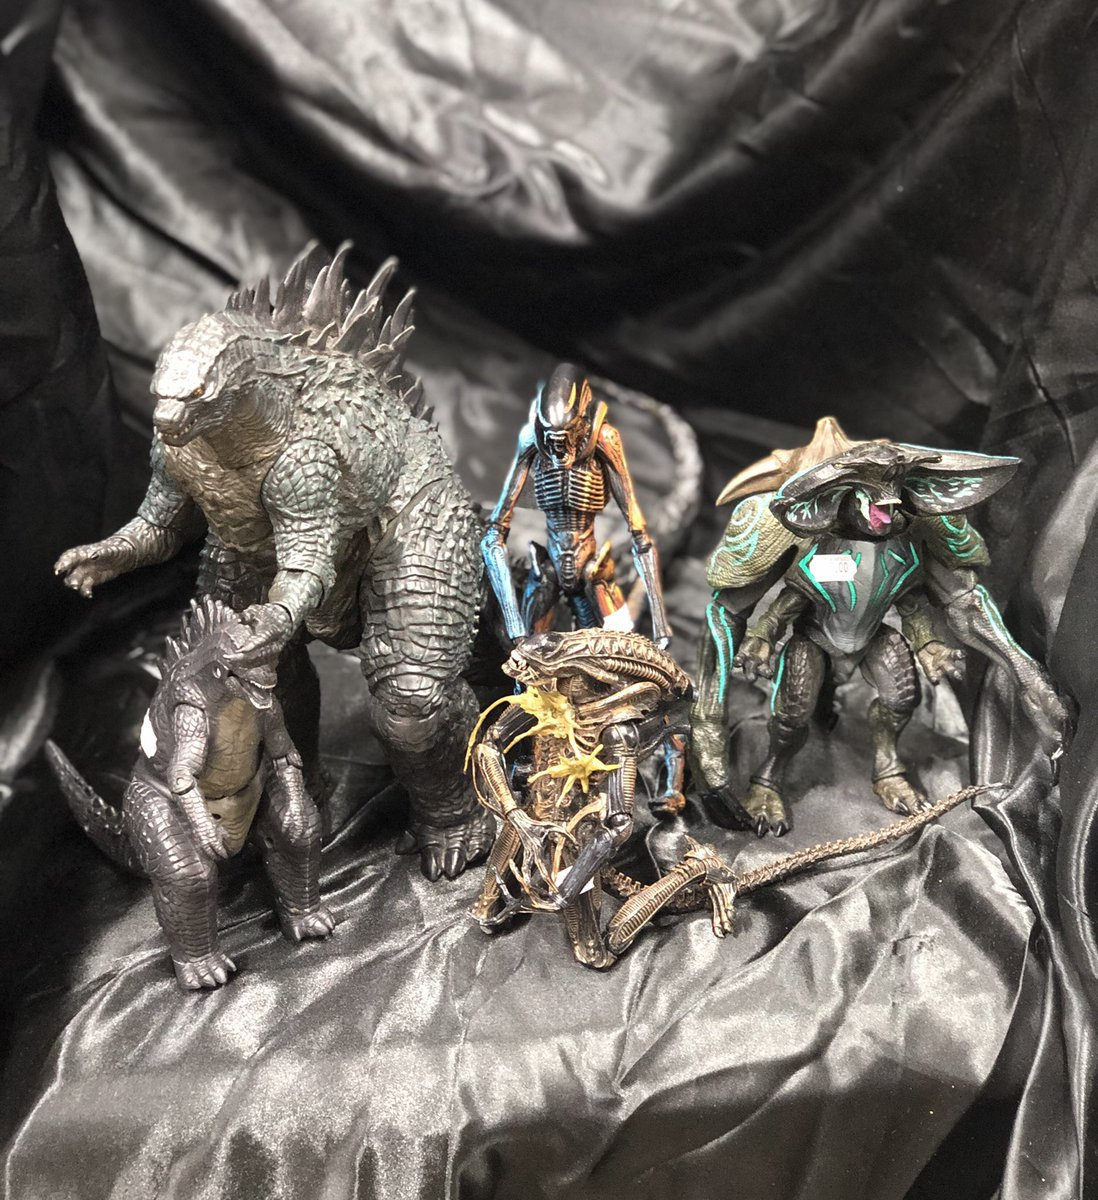 Still shopping for Dad?  Check out our loose section for horror, Kaijus, and more!   #Neca #Bandai #Godzilla #Alien #Xenomorph #Kaiju #PacificRim #Toys #ActionFigures #ToyHunter #ActionFigureCollector #Collect #Collectible #Collectible #ToyCollector #Sale #Fan #Fun #Follow #SATX